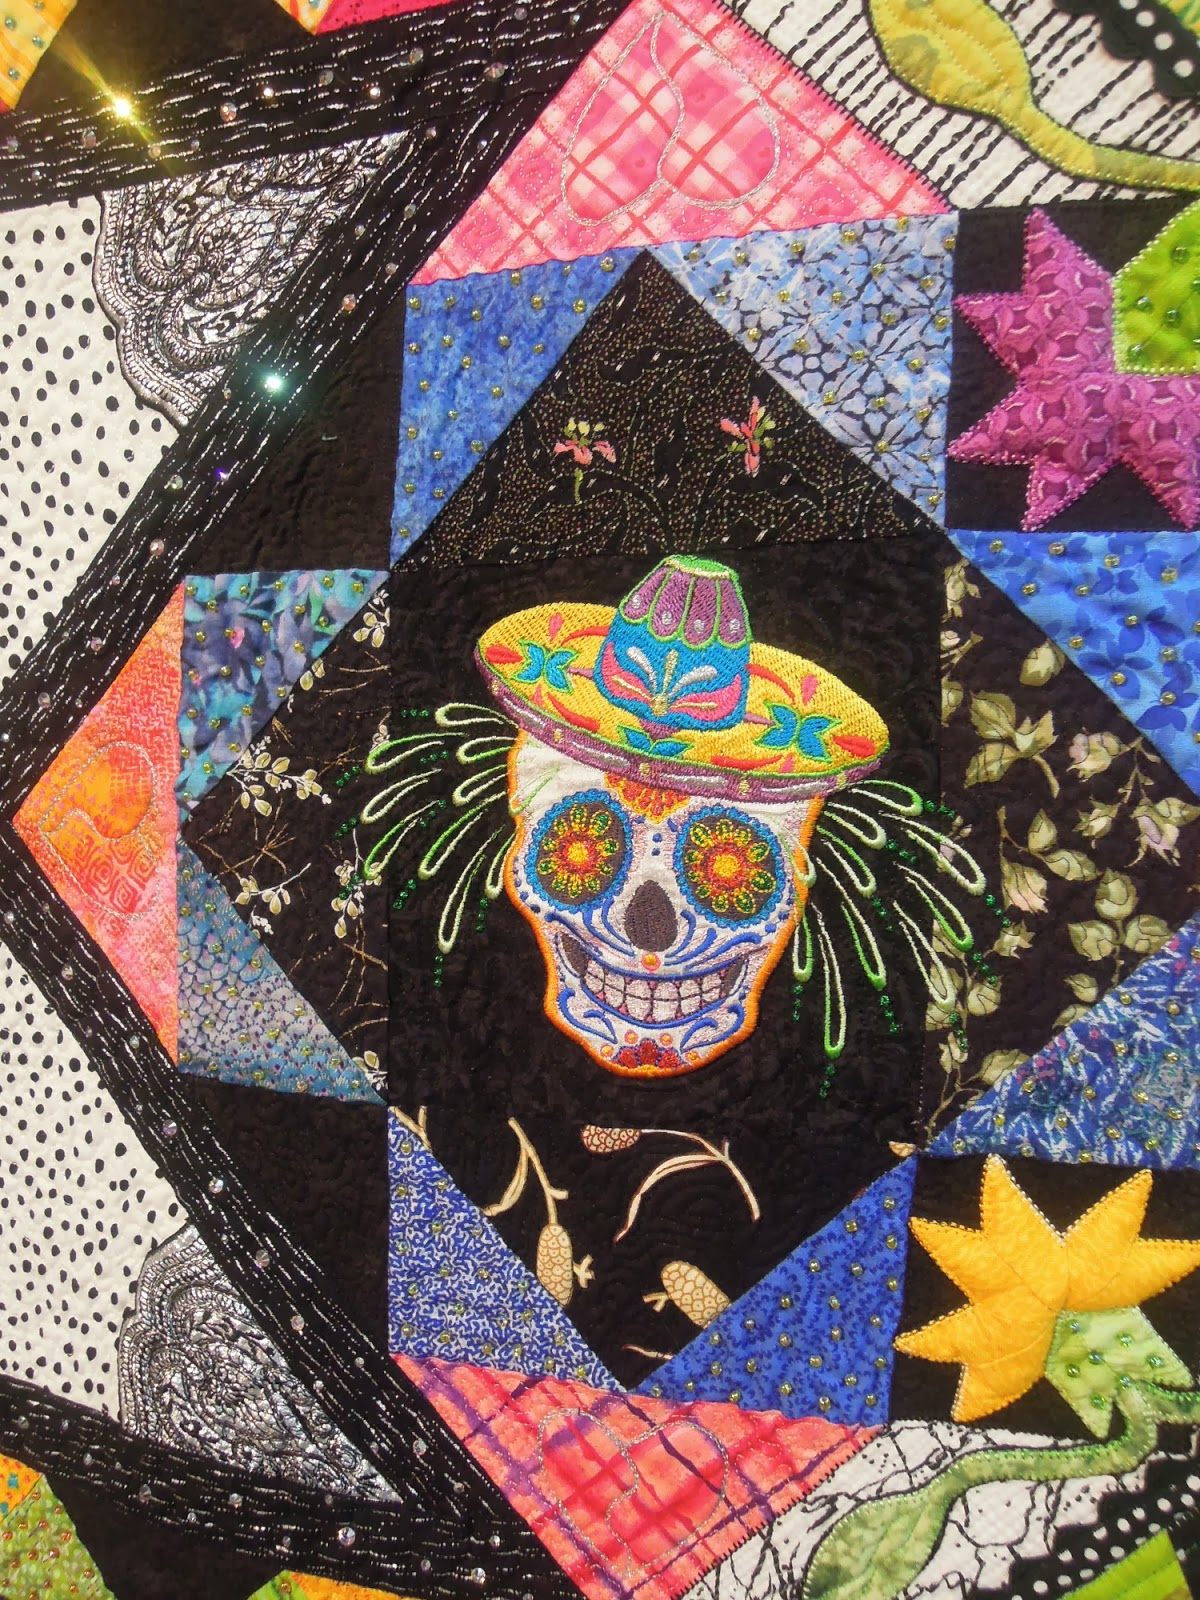 Quilt Inspiration: From Houston: Quilts that honor The Day of the Dead